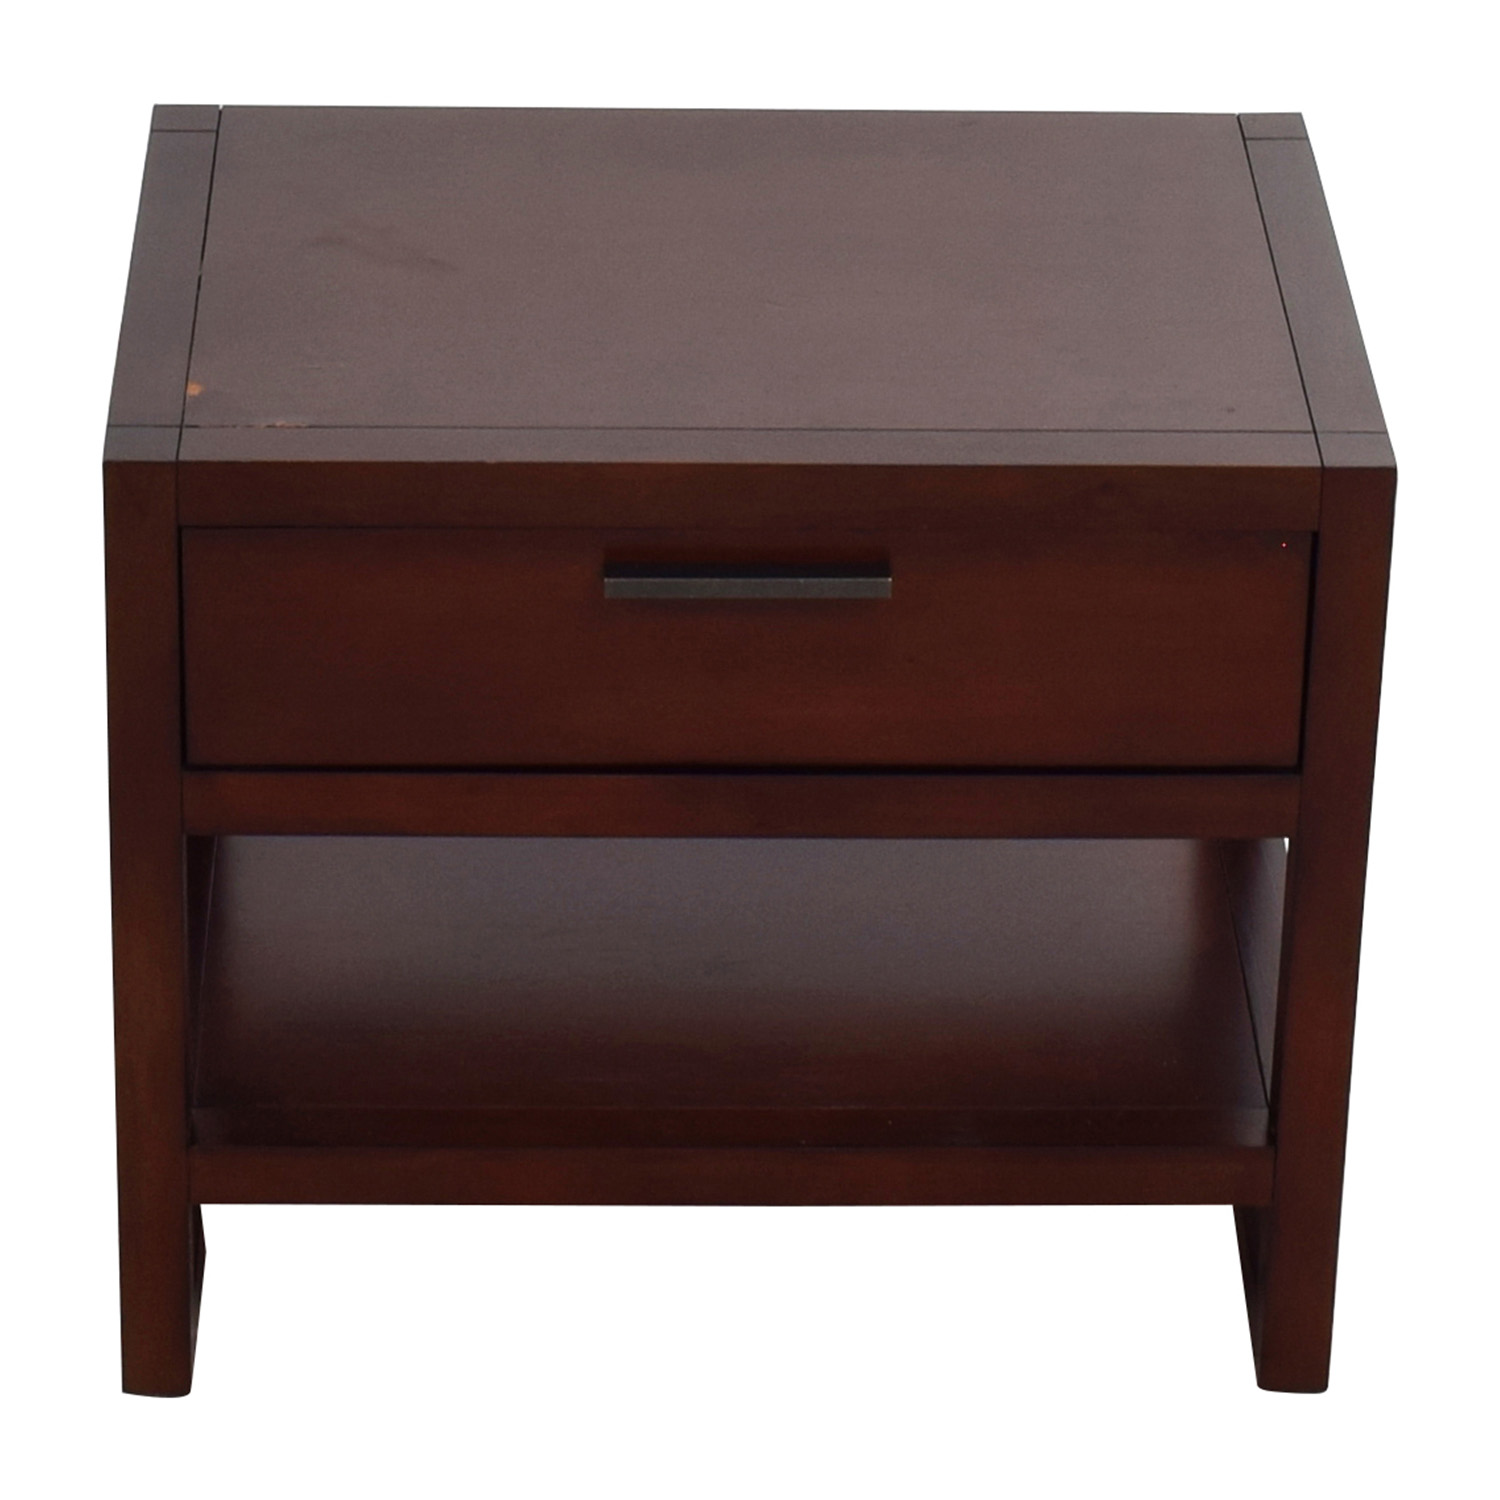 Macys Macys Battery Park Night Stand second hand